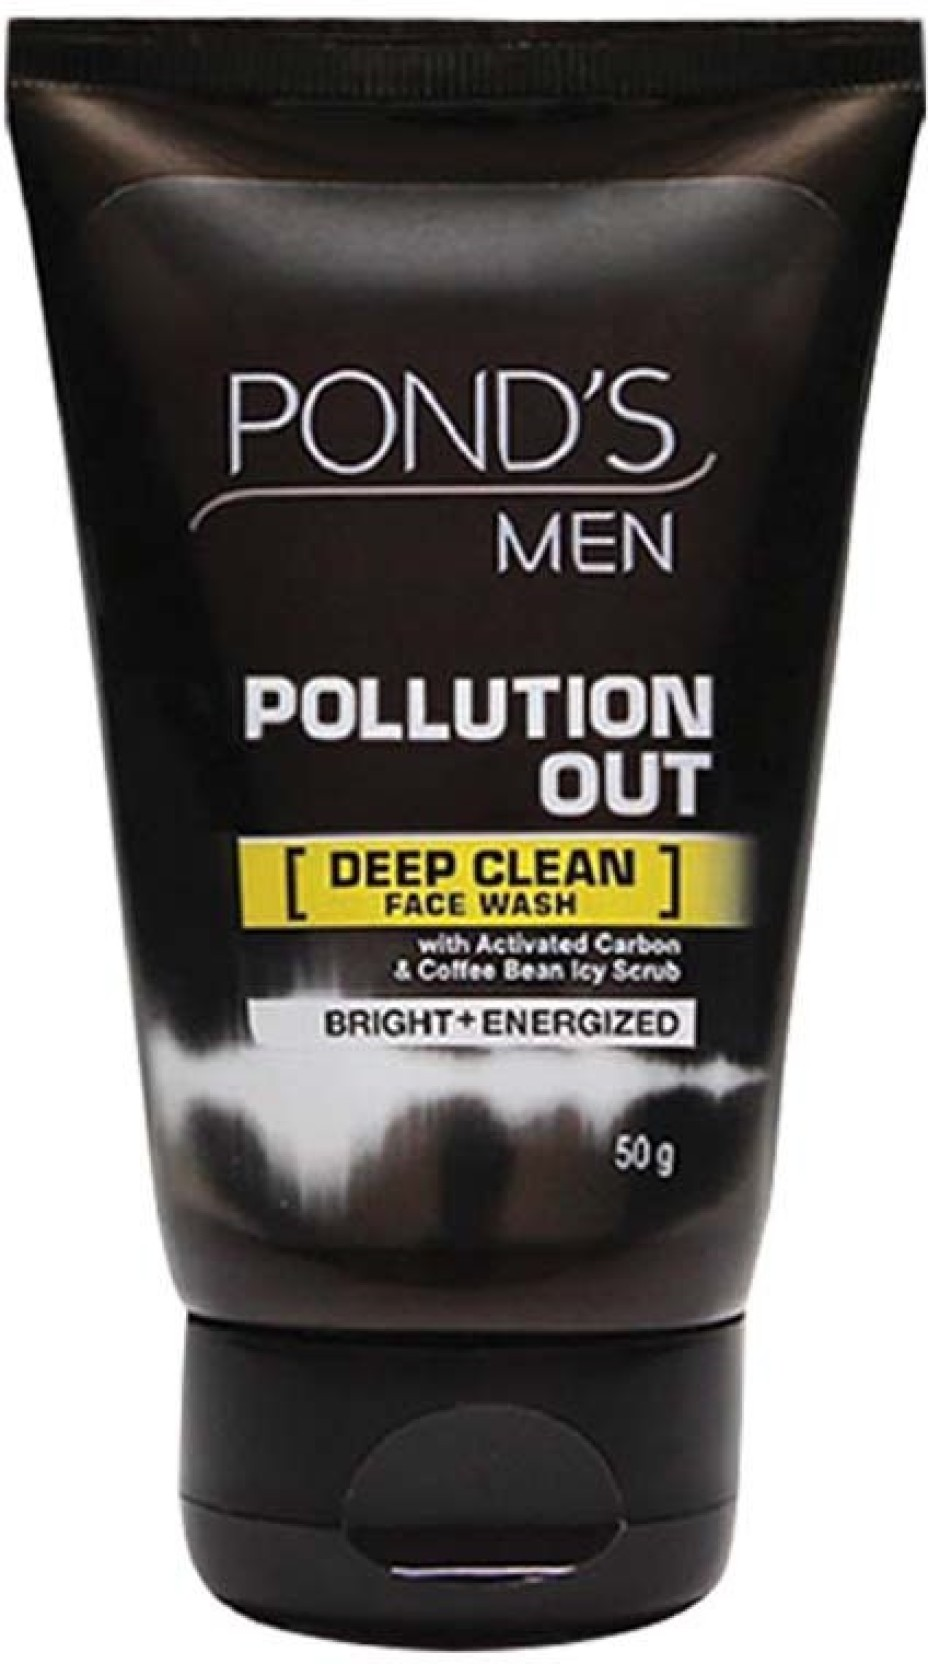 Ponds Pollution Out Face Wash Price In India Buy Men Energy Charge Cream 20ml Add To Cart